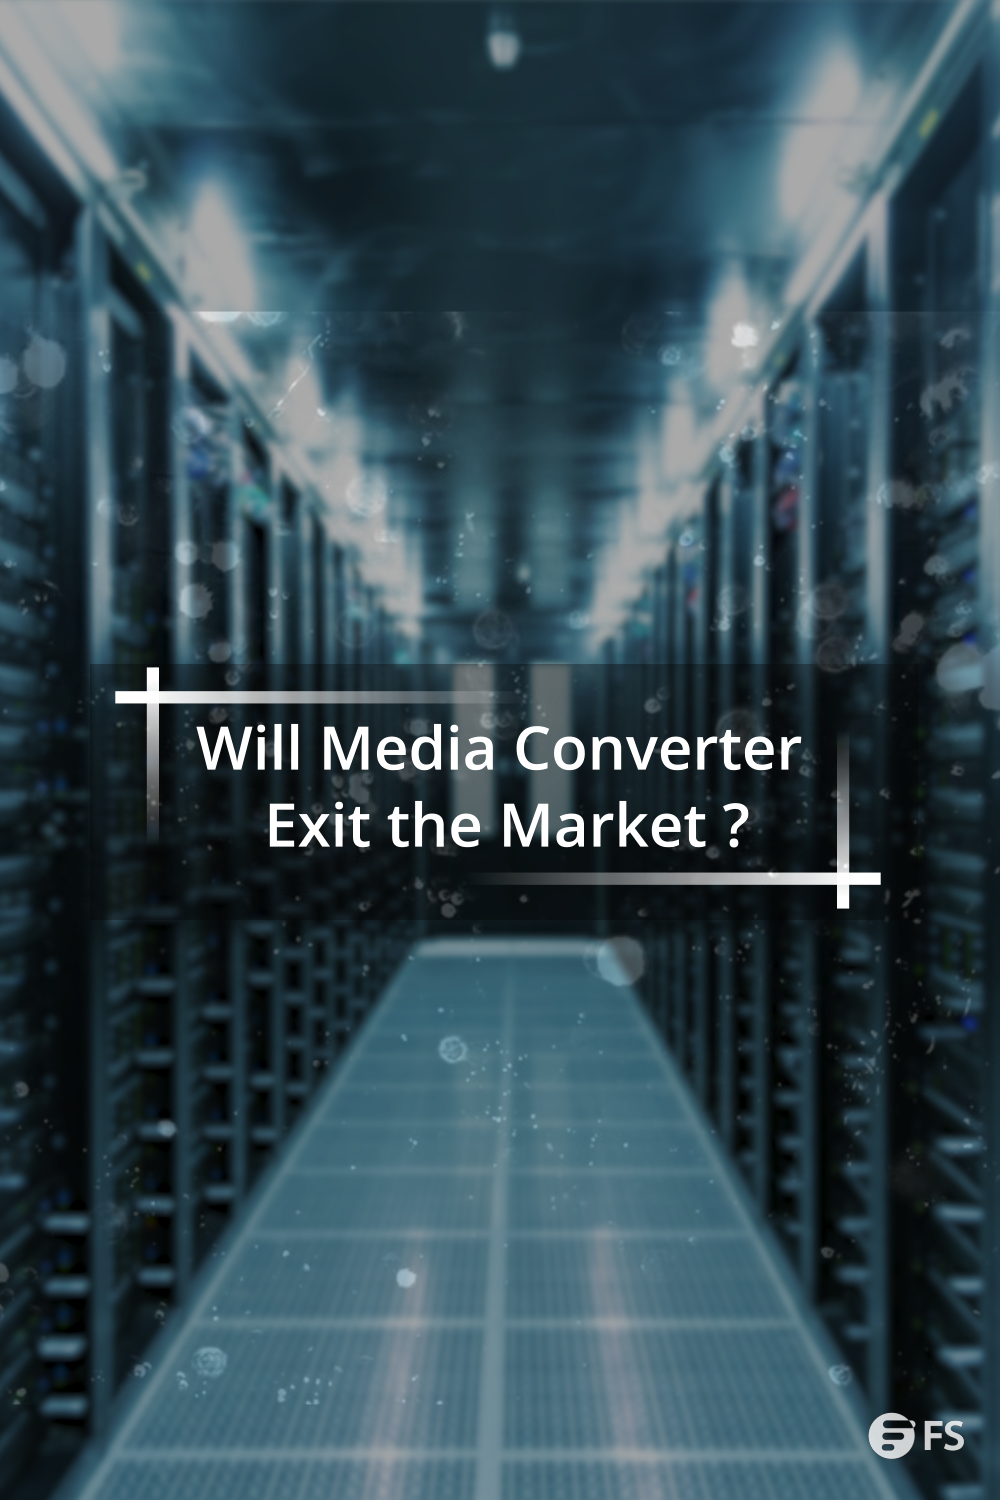 Will media converter exit the market Media converter has gained much popularity in fiber communications But there are opinions that it may gradually become obsolete as ar...